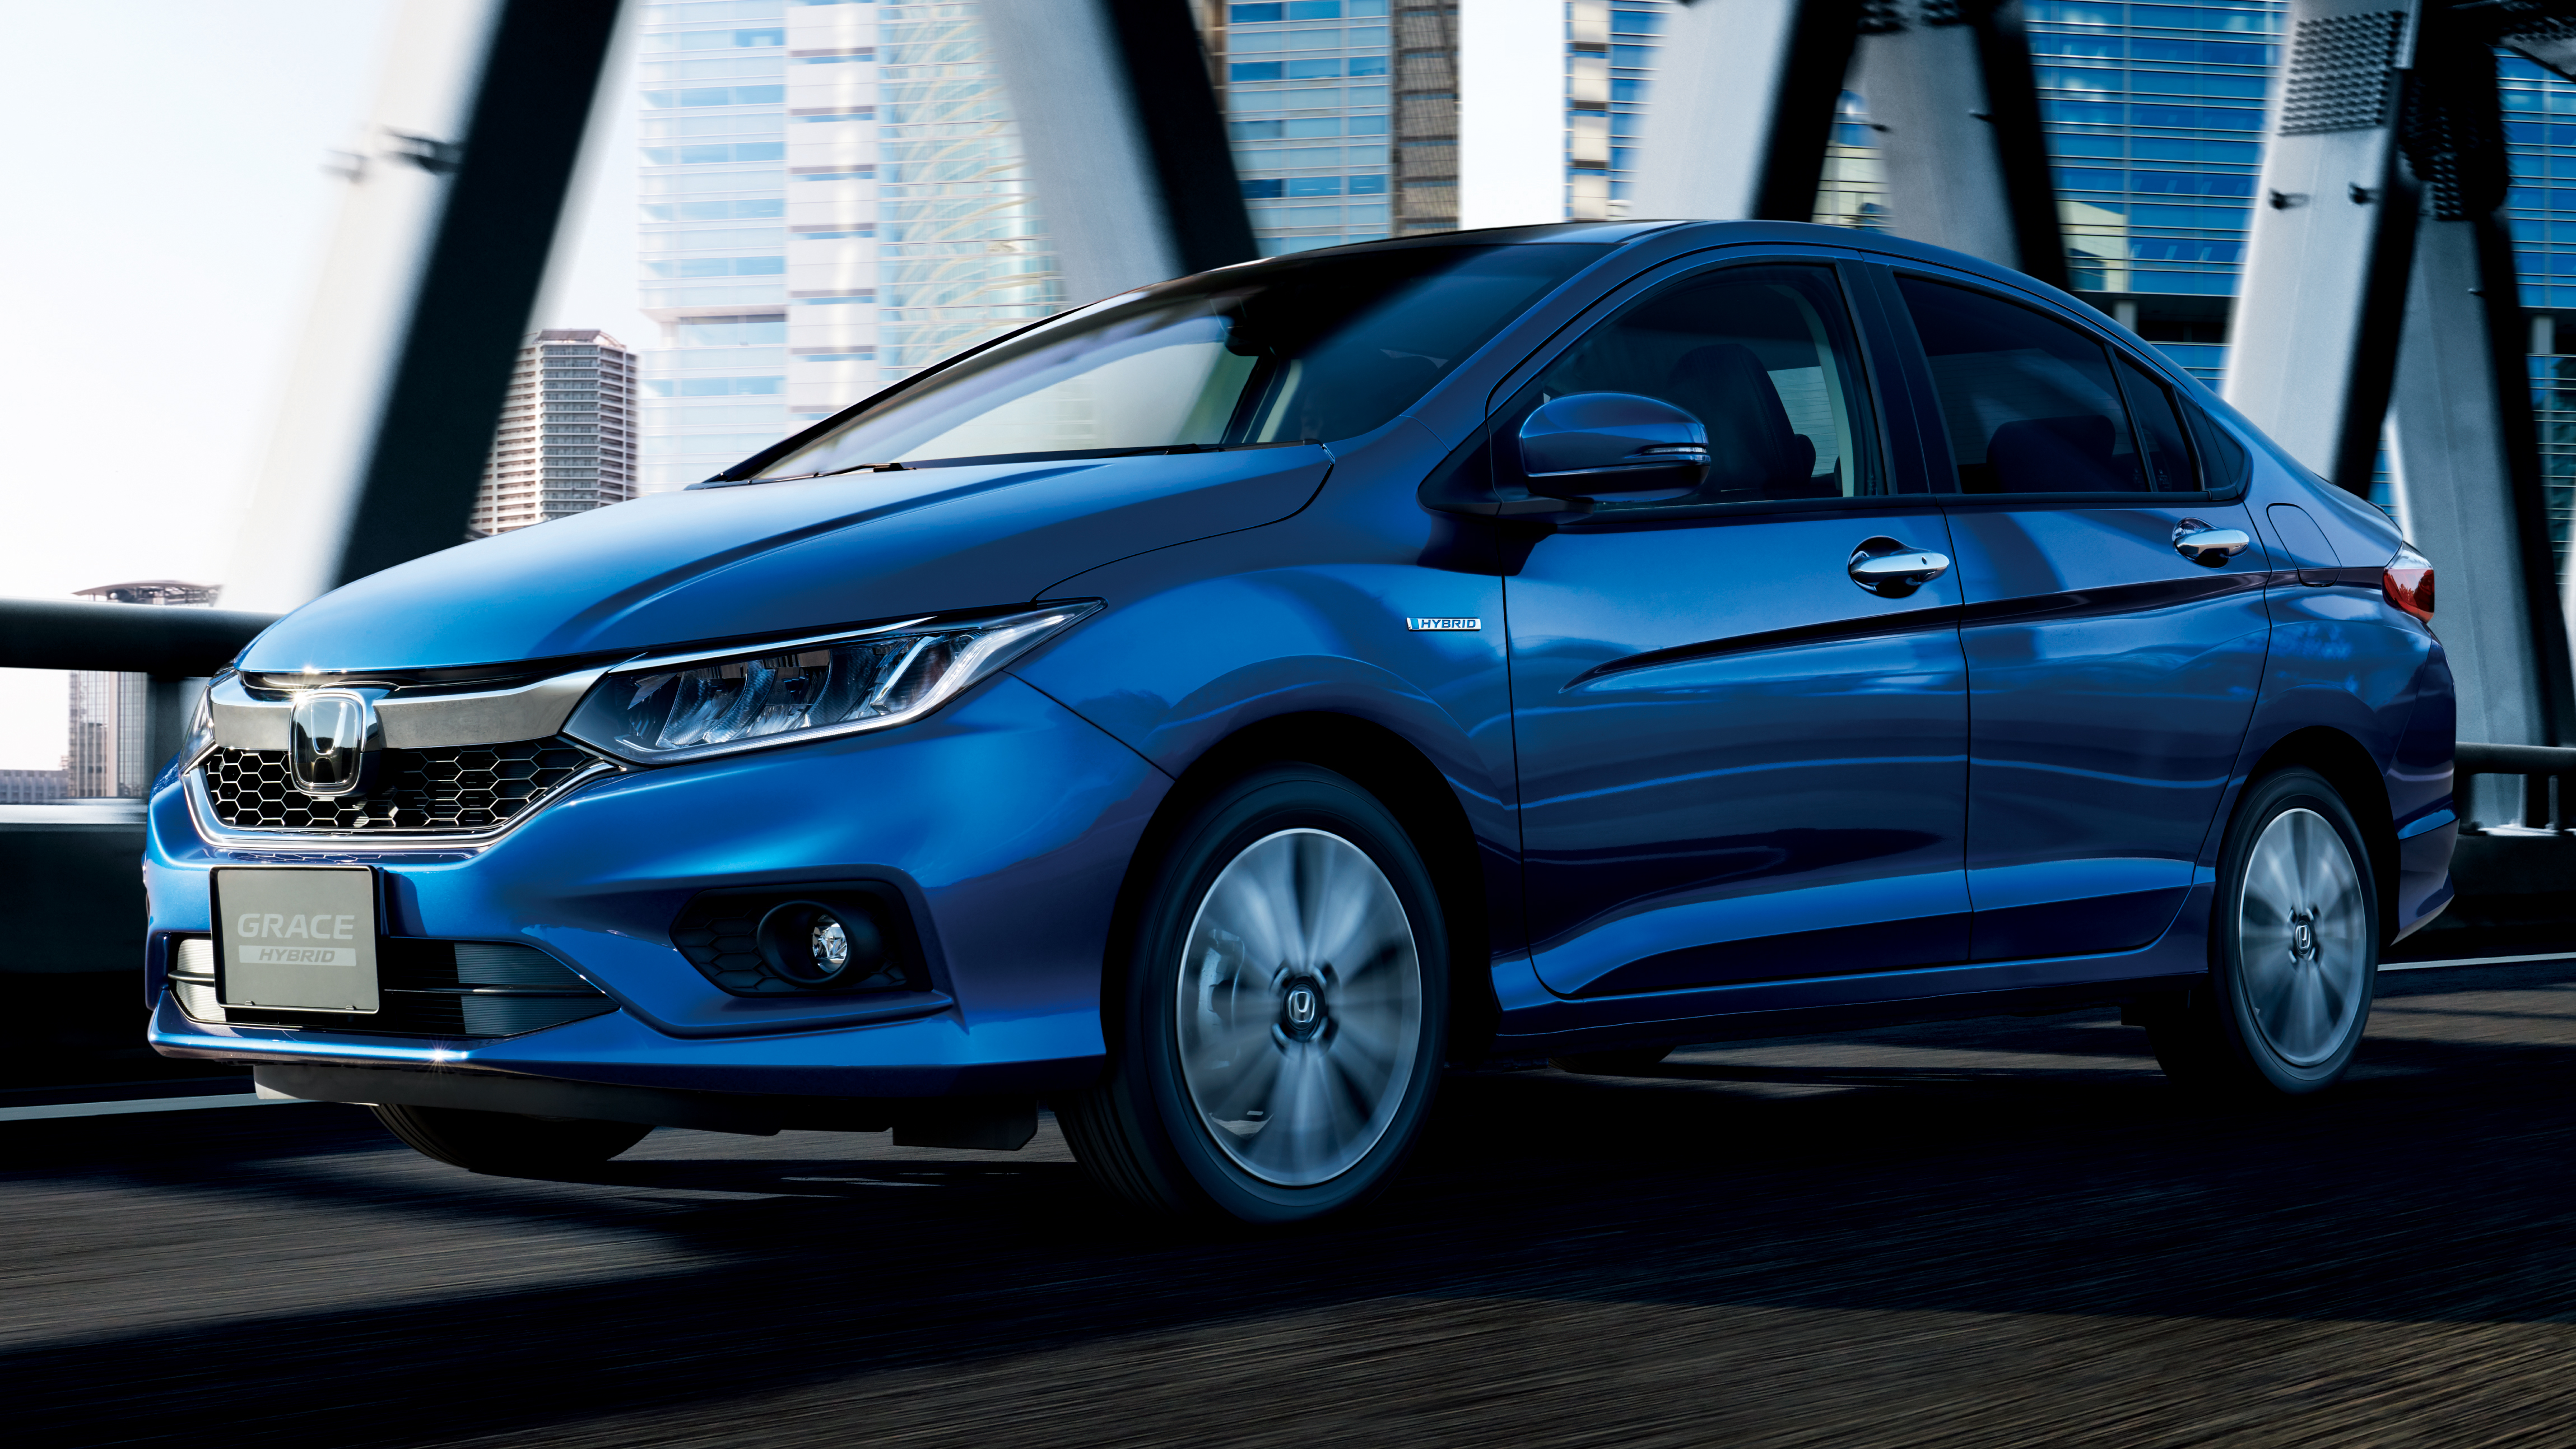 Honda Grace Facelift Revised City Launched In Japan